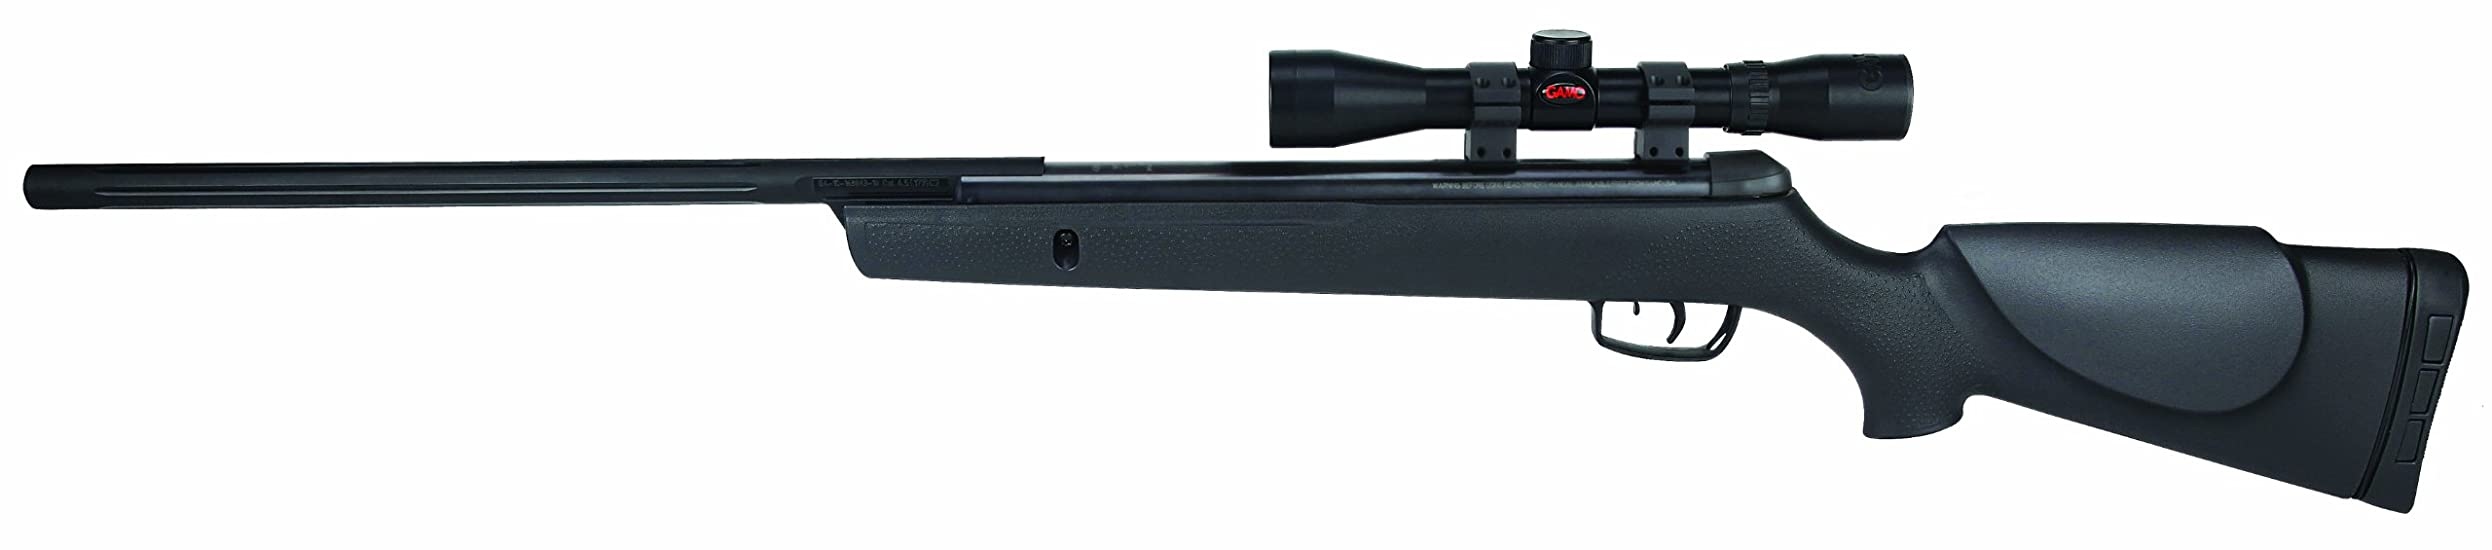 Gamo 6110065654 Big Cat 1250 Review